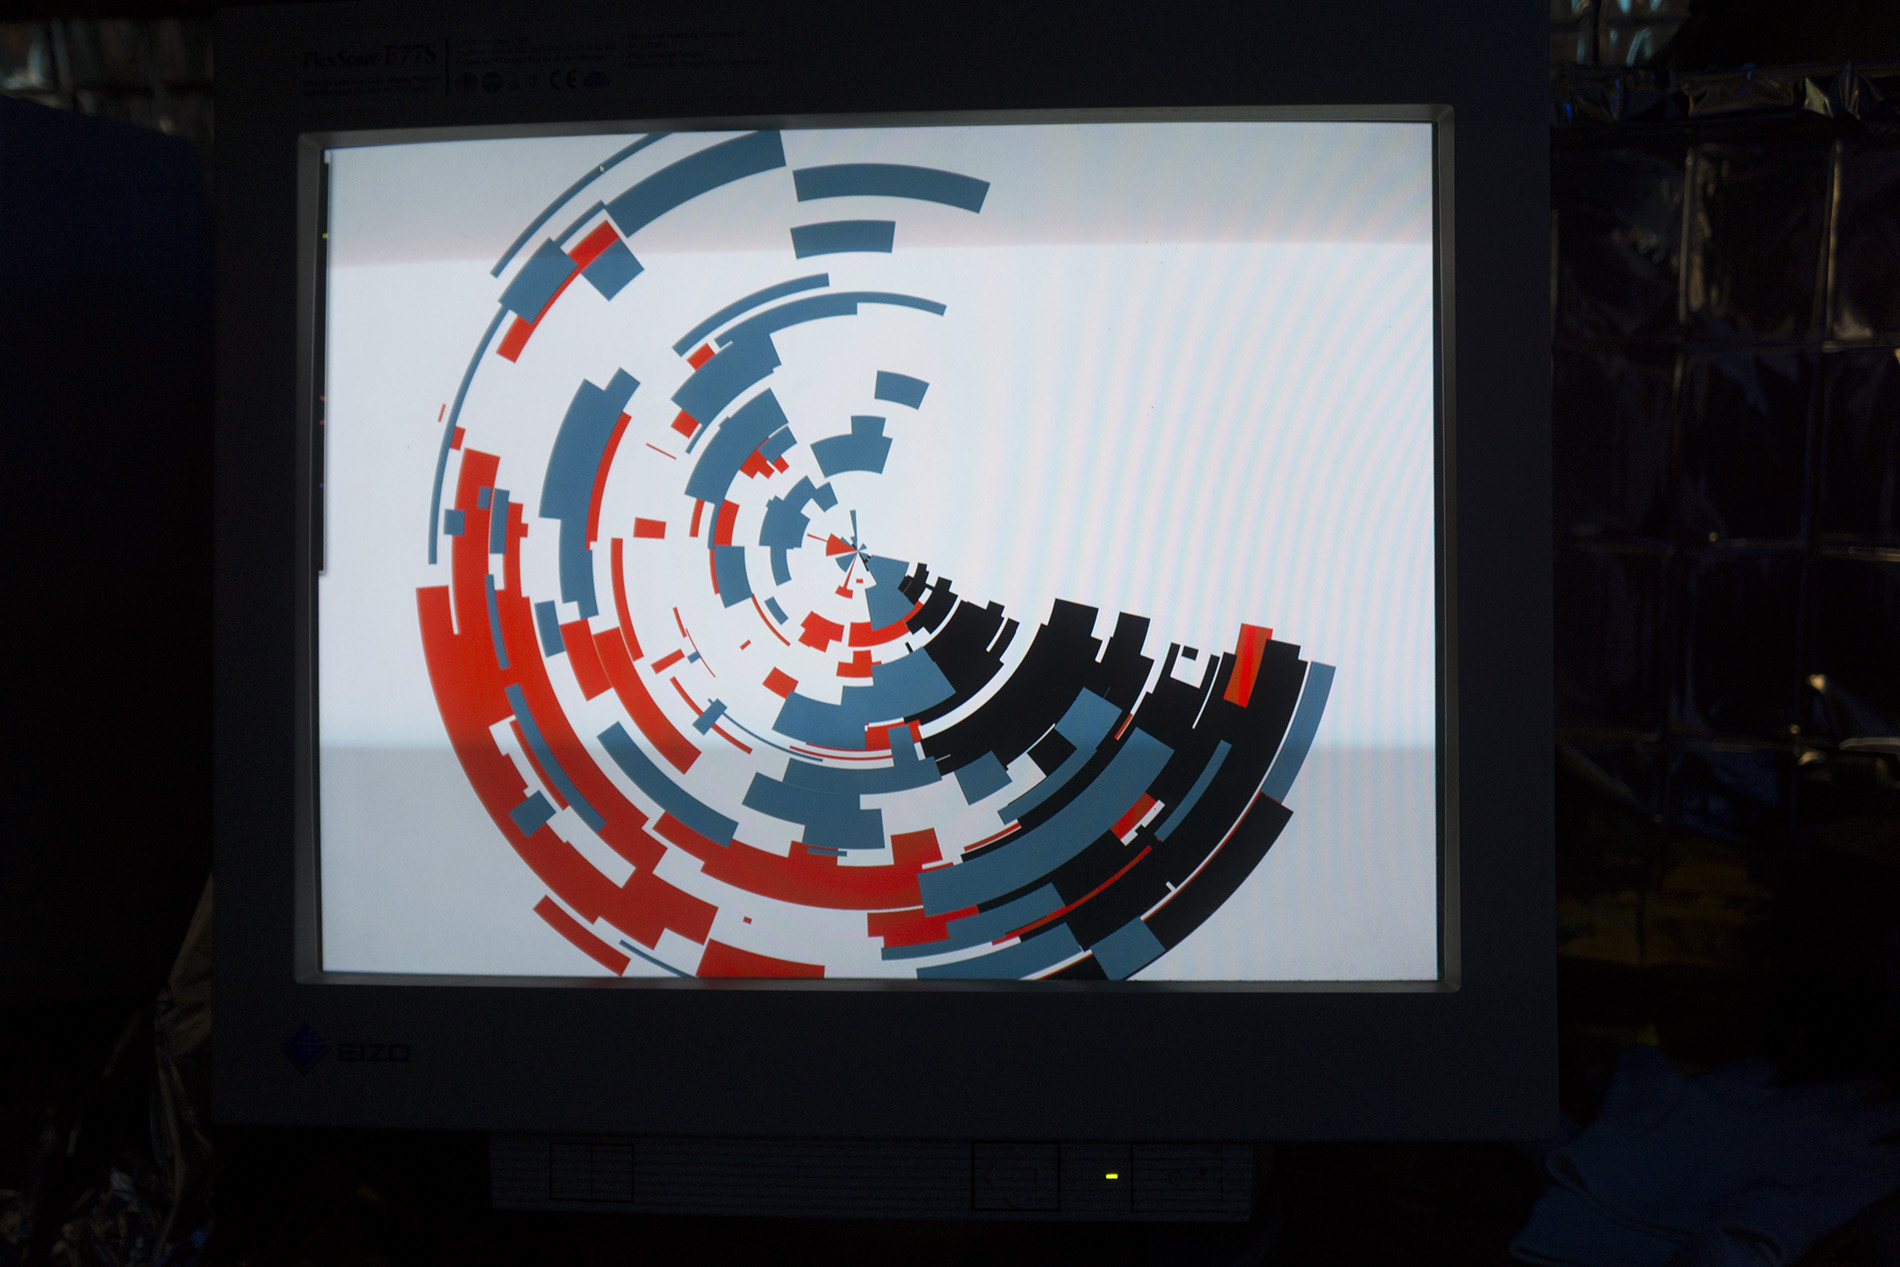 Shapes of mine - interactiv generative art installation by Dominik Jais